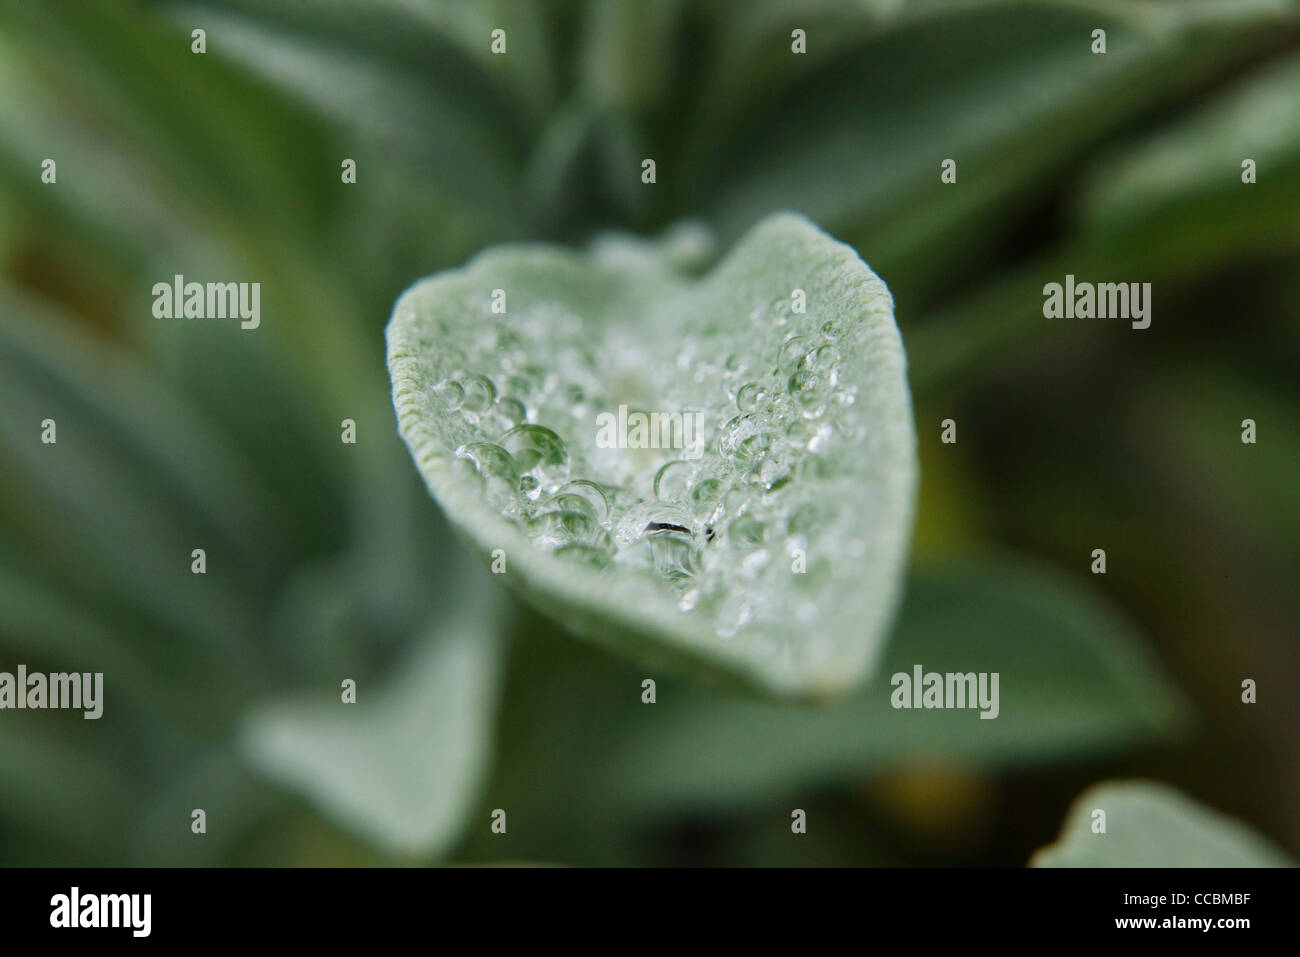 Water drops on sage leaf, close-up - Stock Image